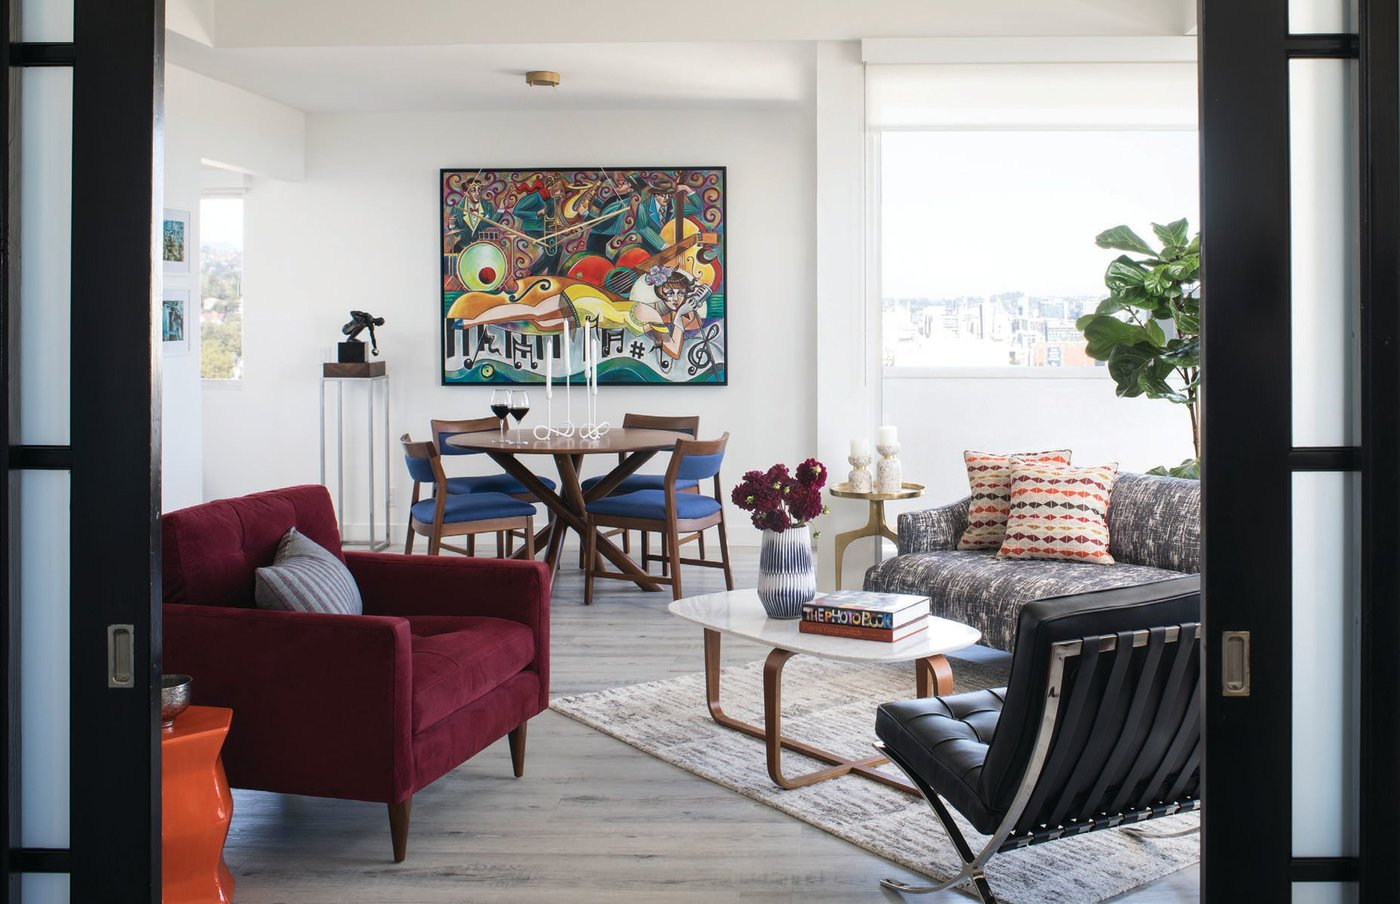 A bold painting by artist Amy Lynn Stevenson makes a statement above the dining table PHOTO BY MEGHAN BEIERLE